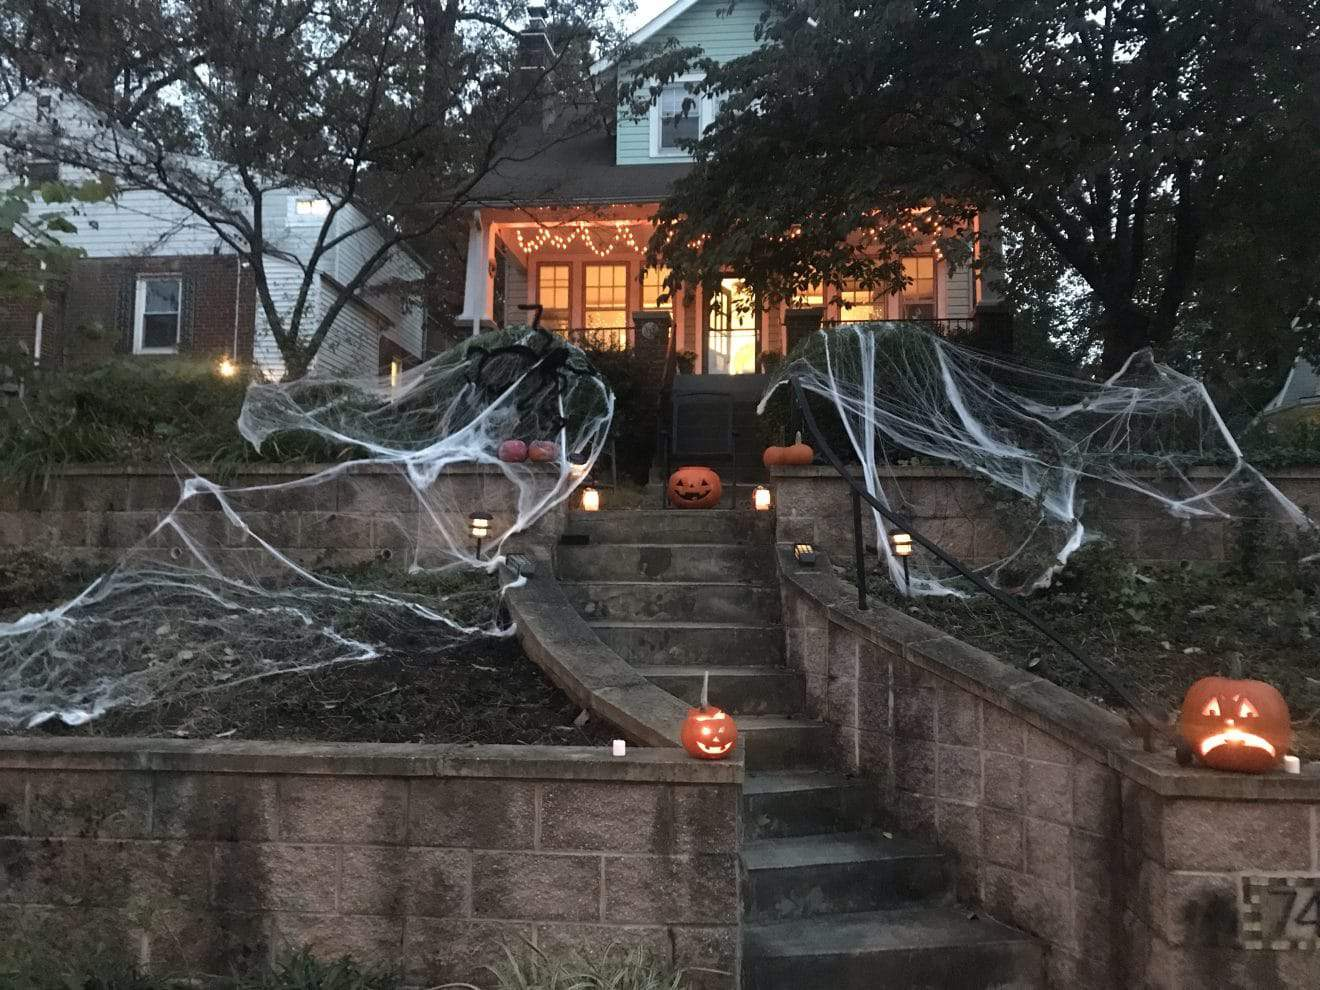 Halloween Hauntings Around the Neighborhoods - Several residents sent additional photos of homes decorated for Halloween.